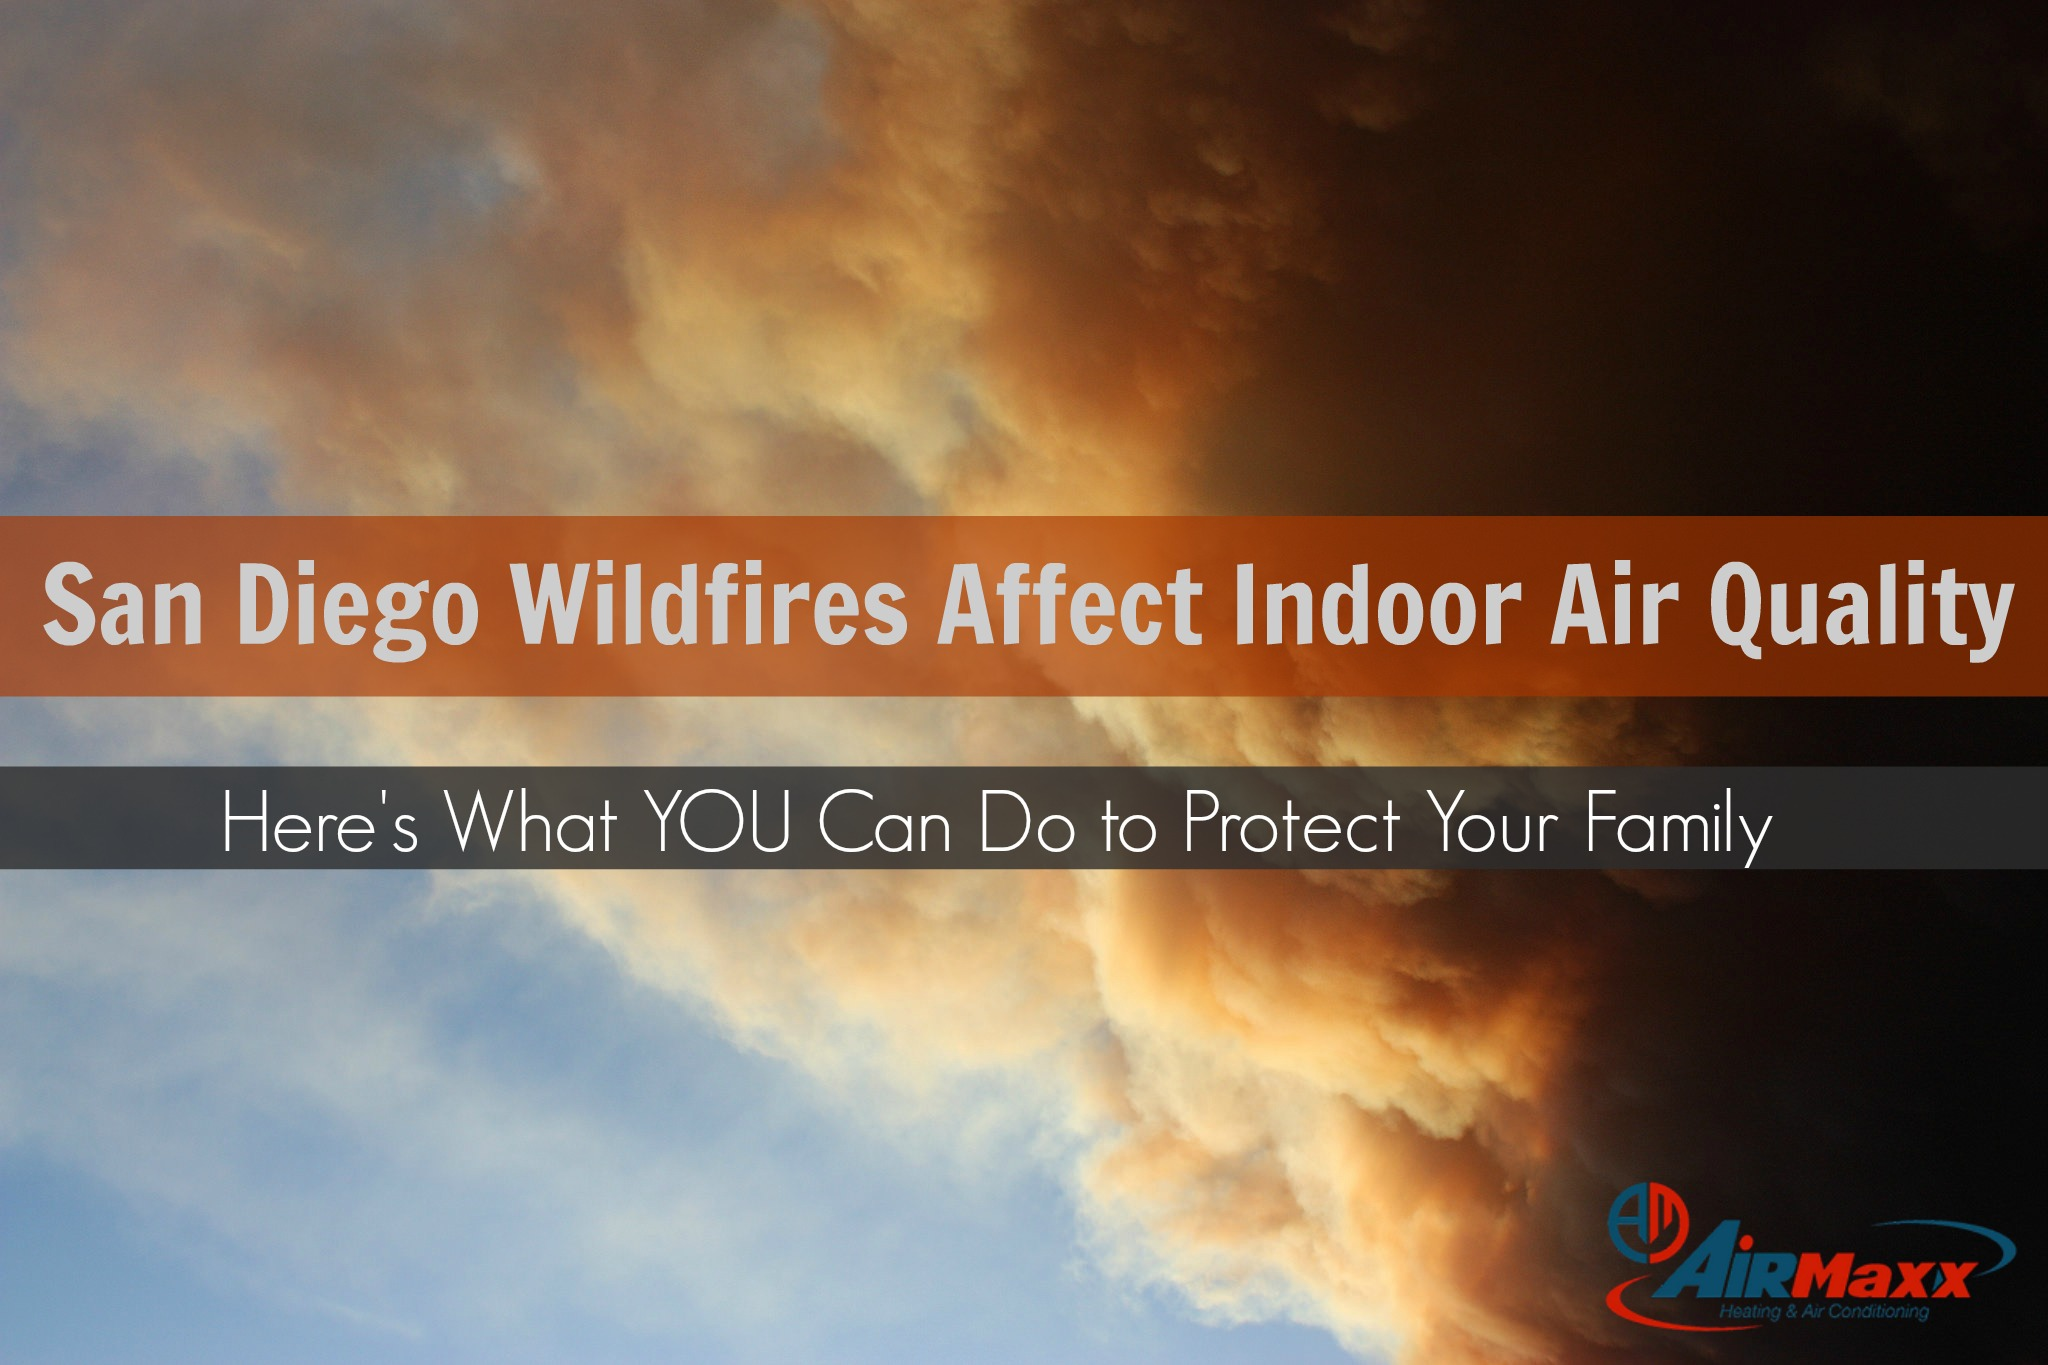 San Diego Wildfires & Air Quality